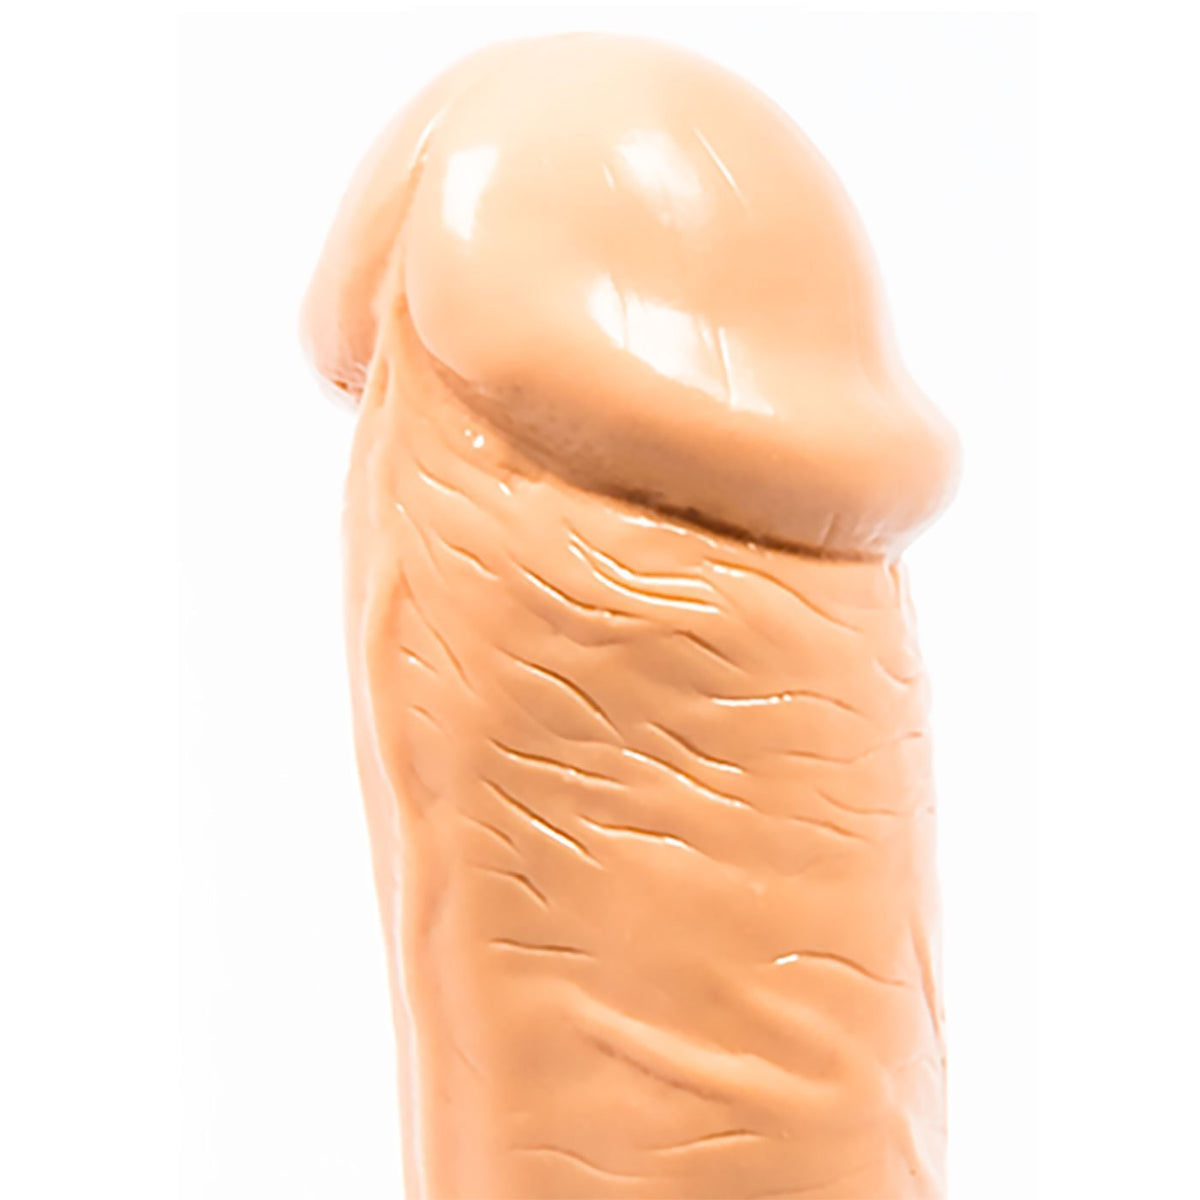 Cloud 9 Delightful Dong 8 Inch Suction Cup Realistic Dildo w/ Balls